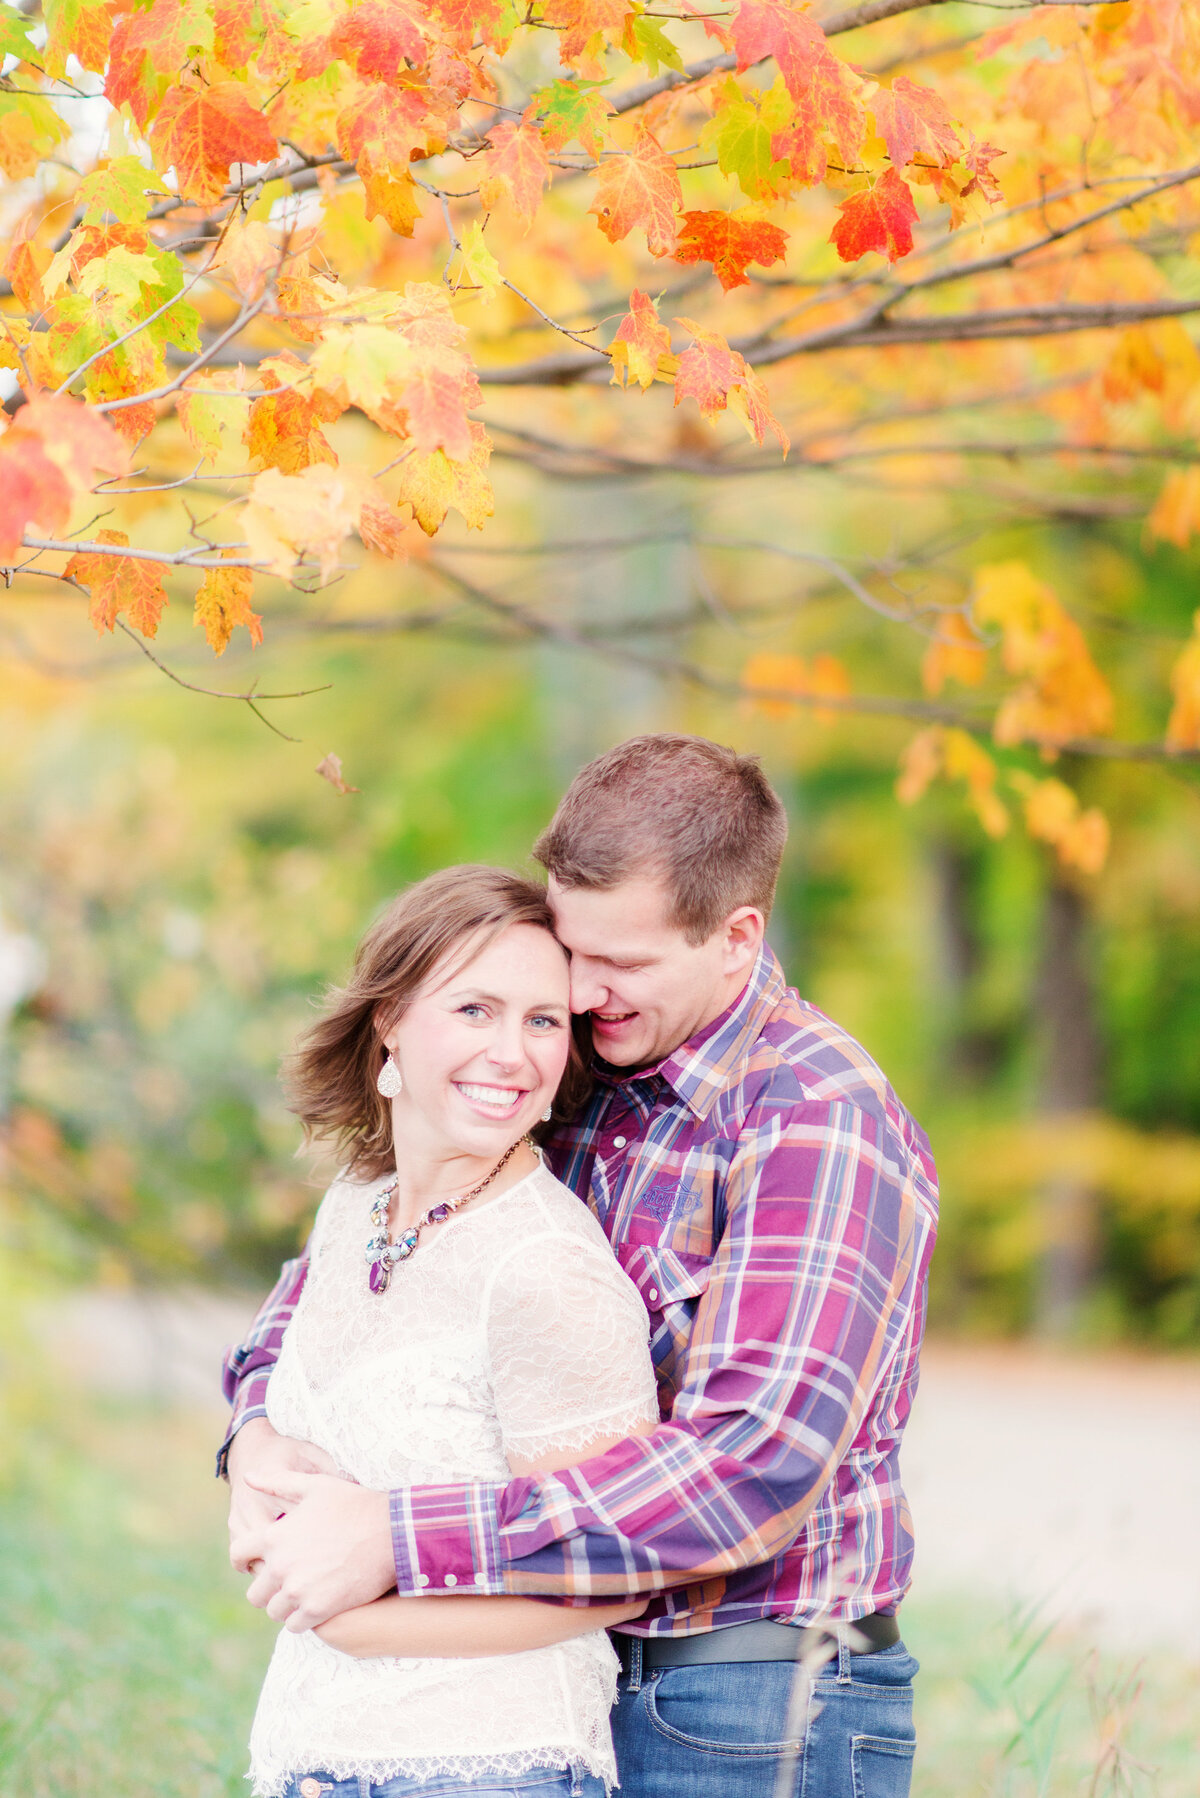 traverse-city-michigan-engagement-wedding-photography-12